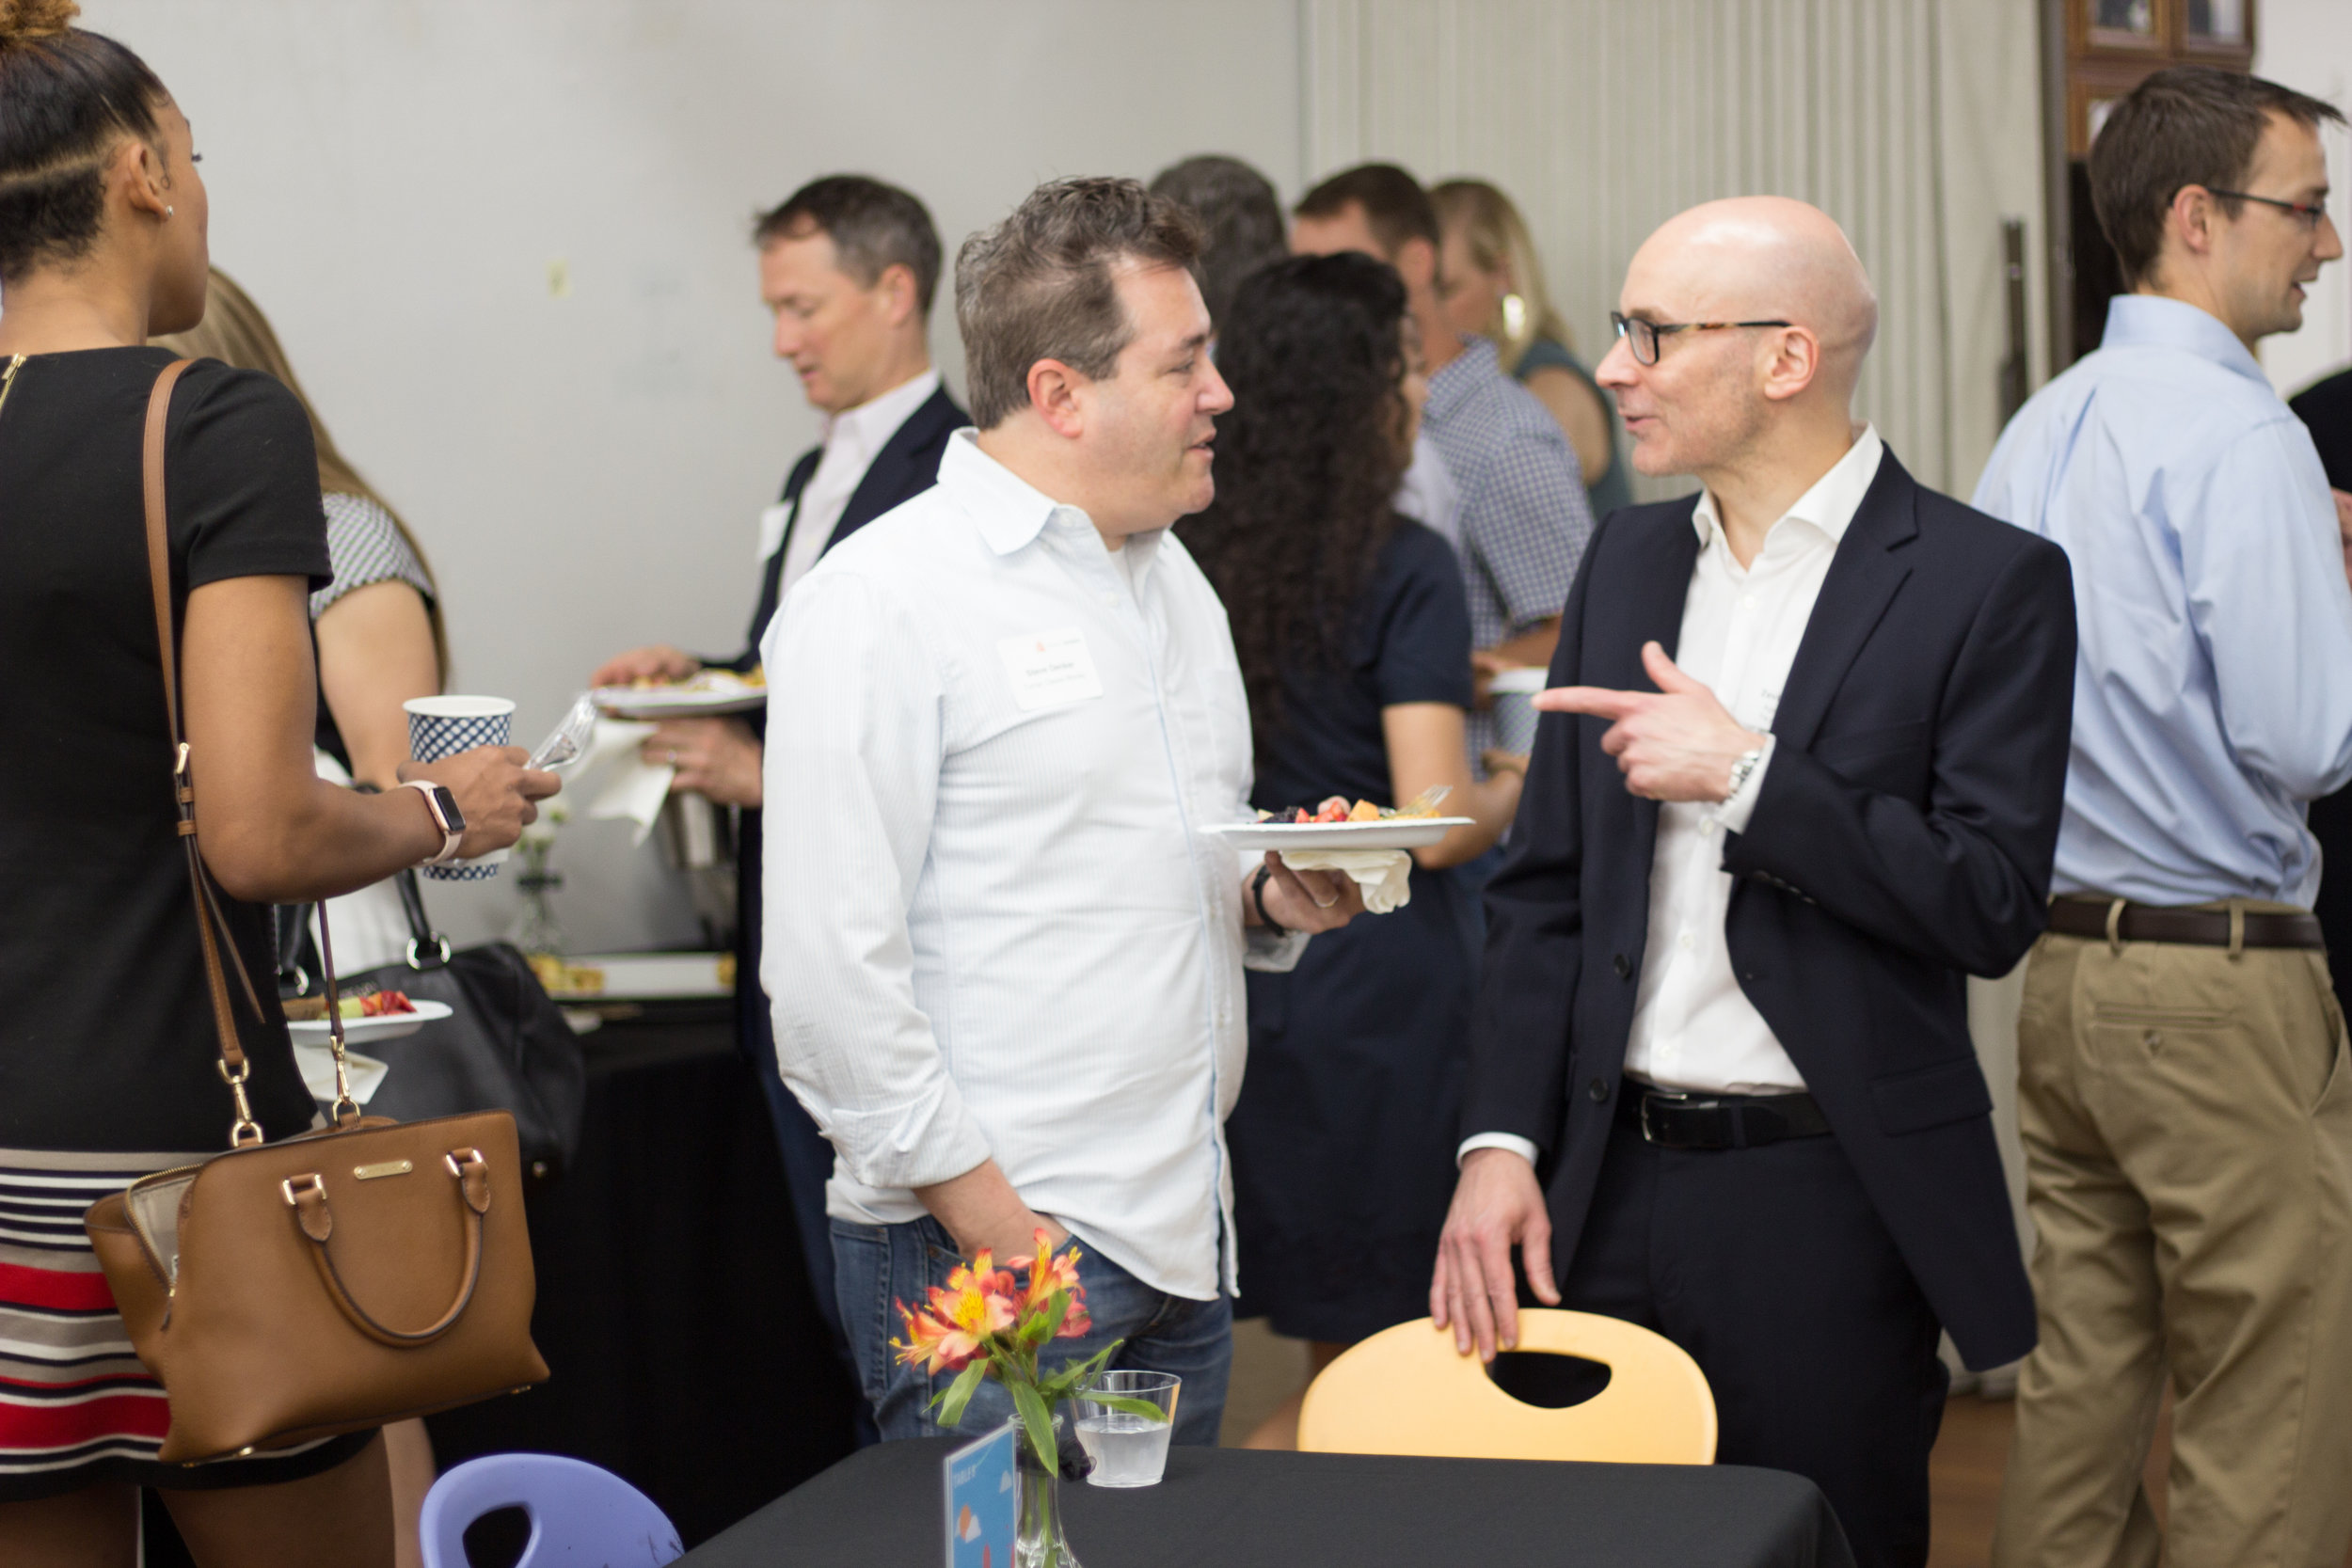 AgencySparks_#MarketersBreakfast_5.2019-0295.jpg